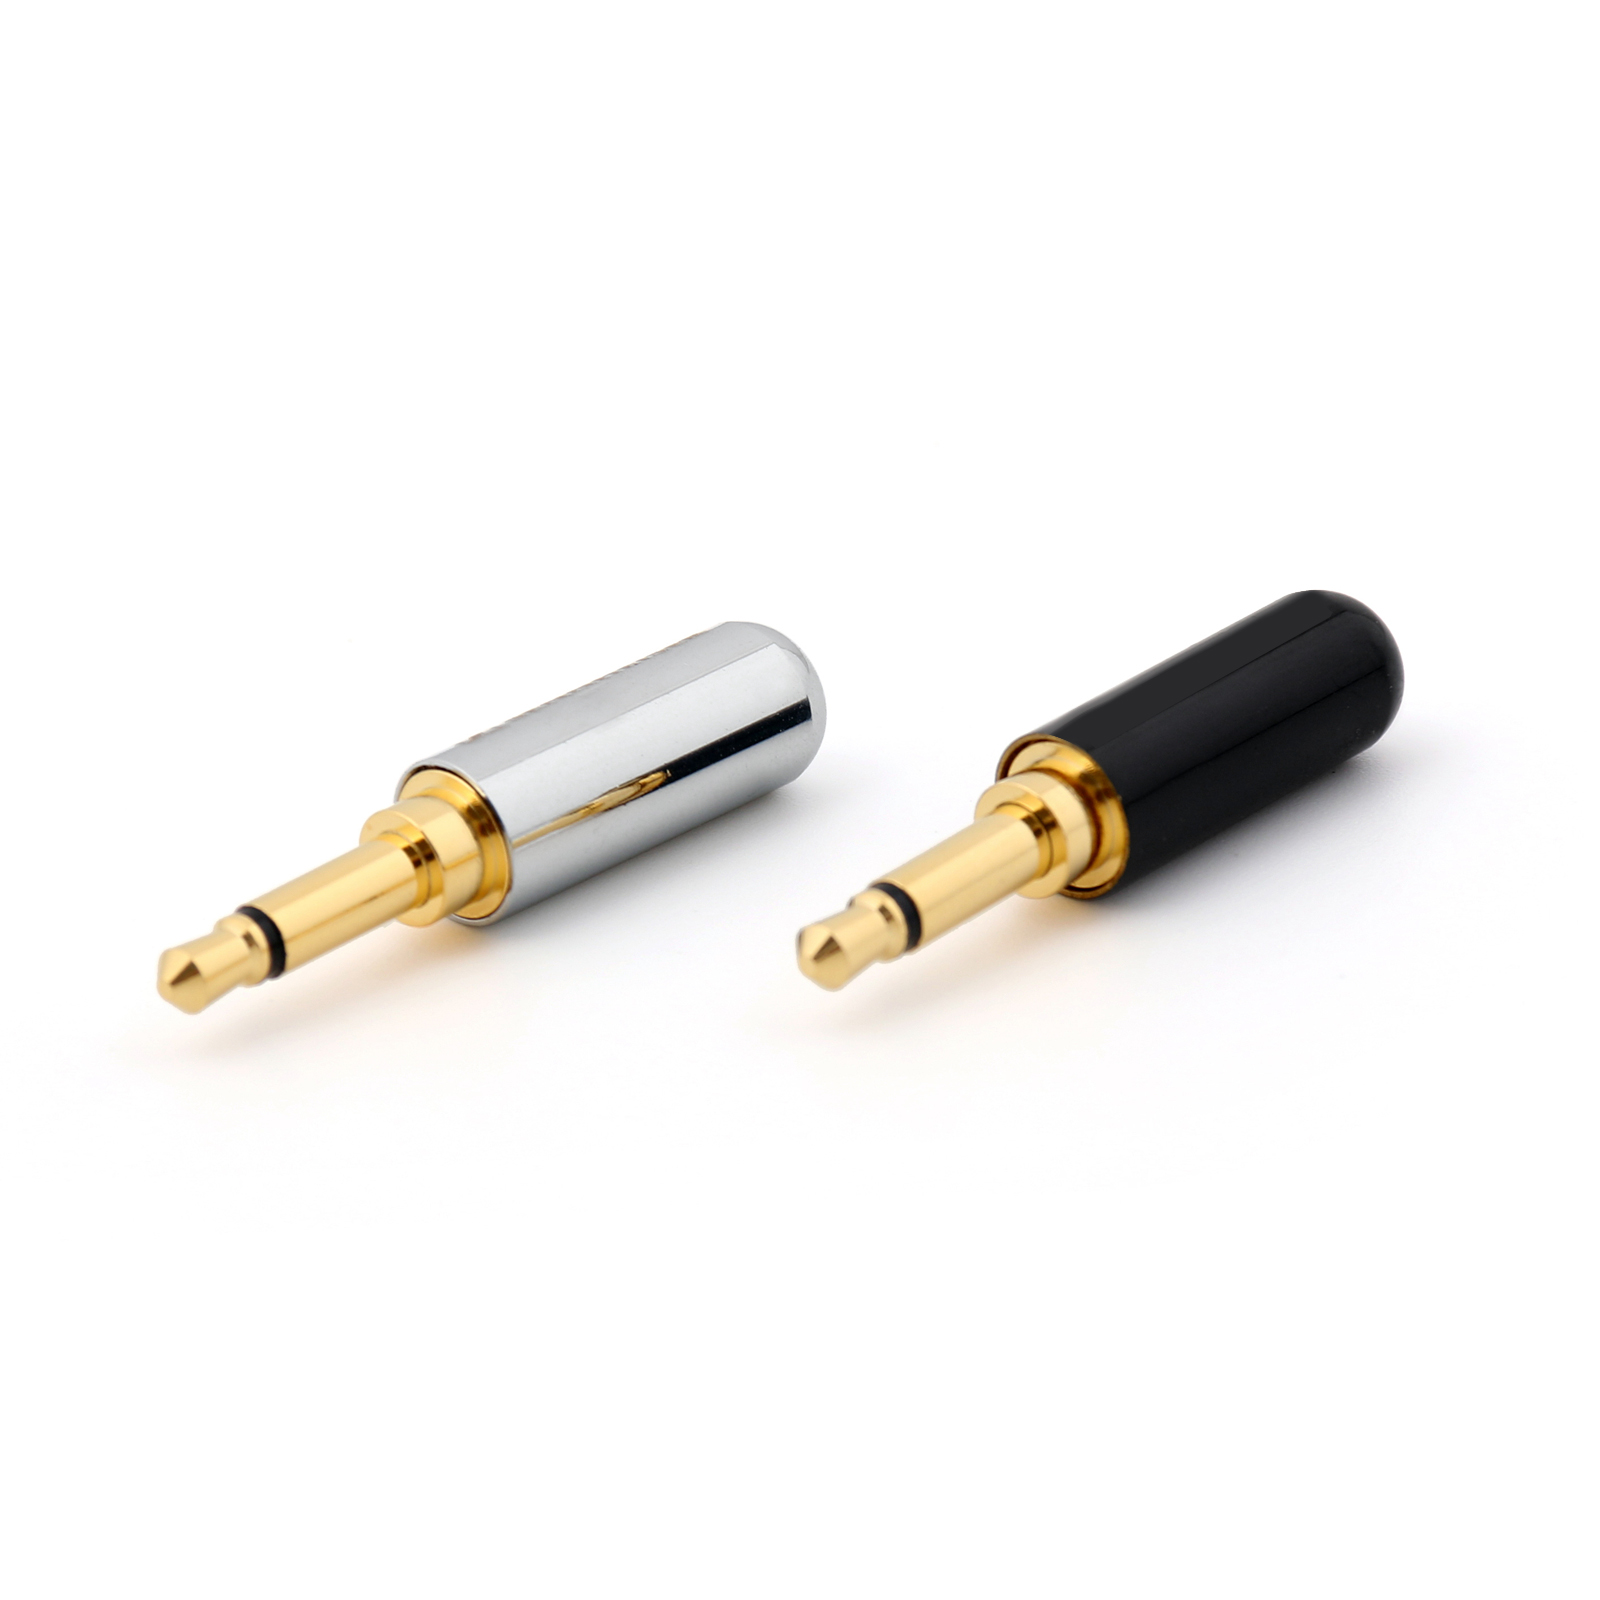 2 Pcs Copper Gold Plated 35mm Mono Mini Jack Plug Soldering Dupon Jumper Wire 20cm 20pcs Mm Ff Mf For Maximum Signal Transfer Durability Male Connection Technology Colorsame As The Picture Show